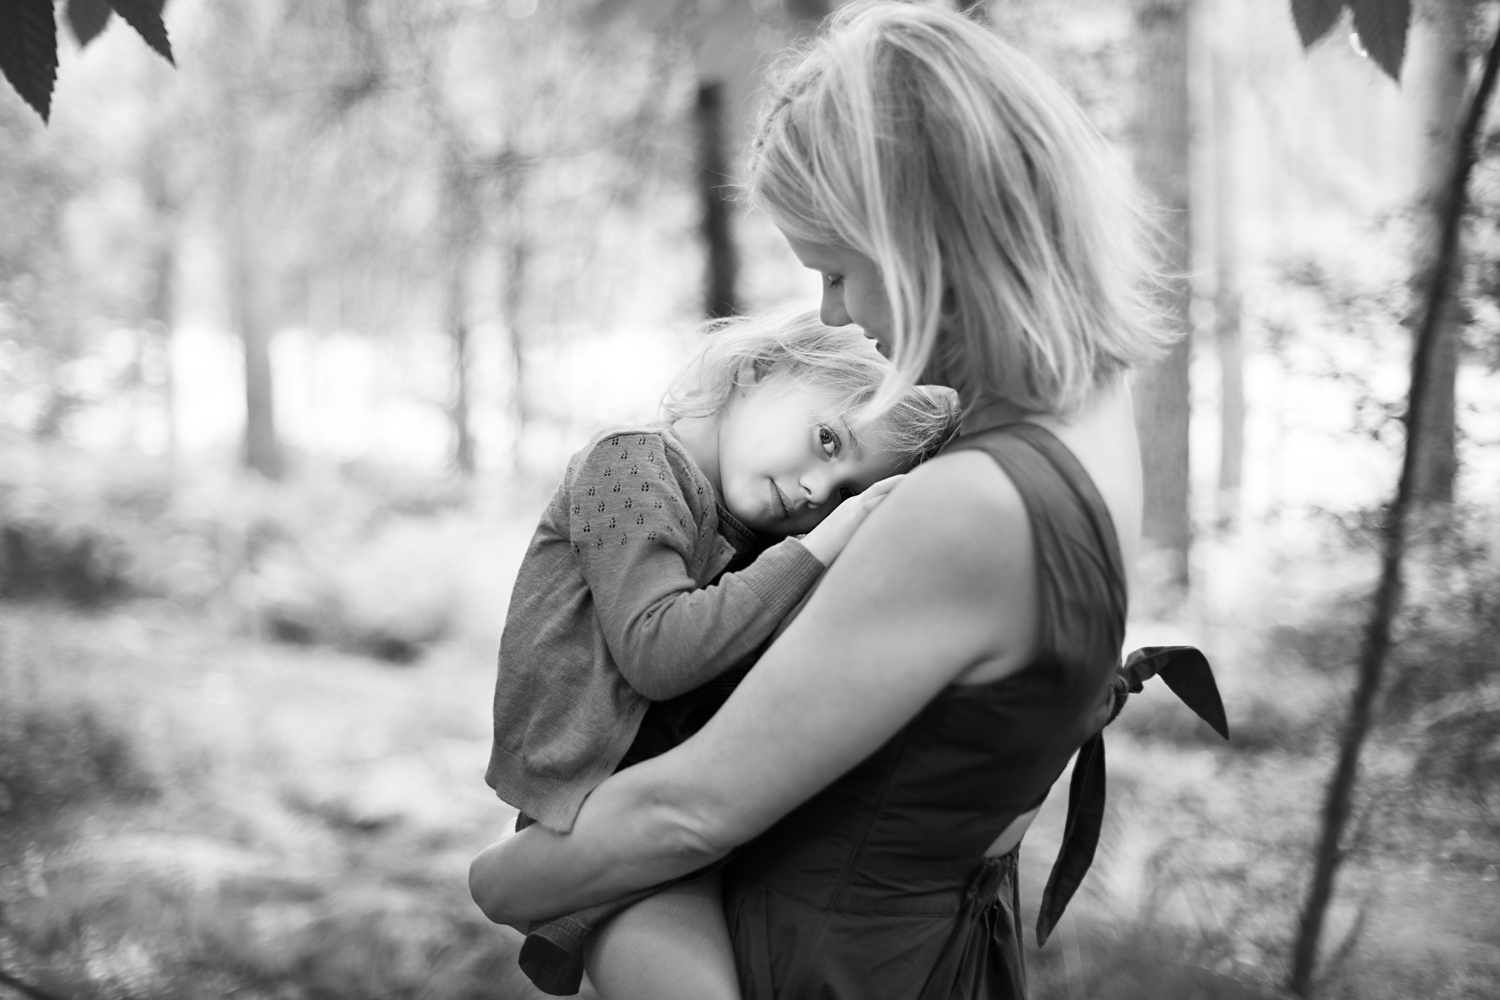 Mother and Daughter - Family Photoshoot in Aspley Heath Woods, Bedfordshire bu Bedford Family Photographer